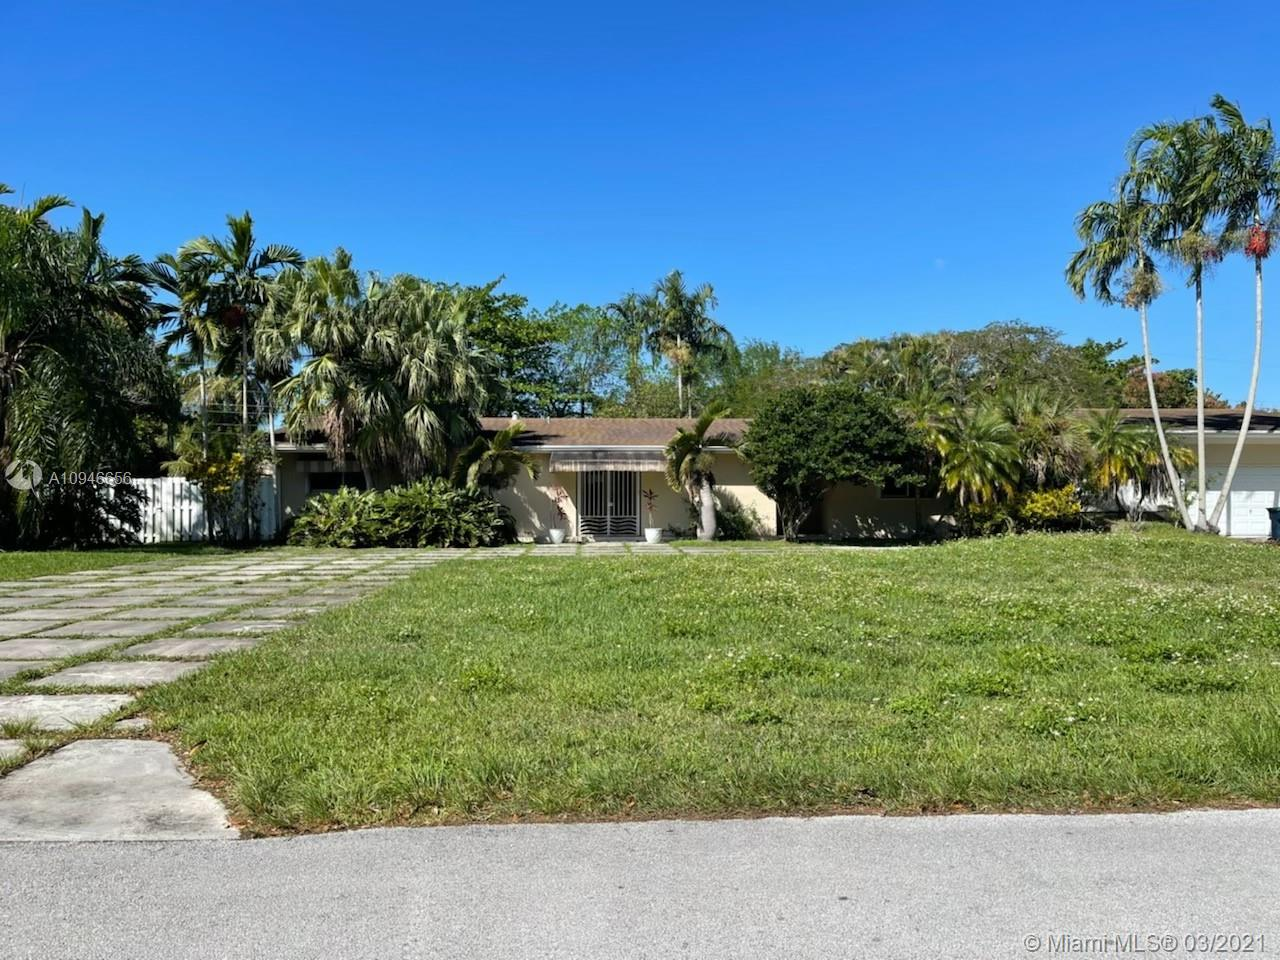 A wonderful opportunity to own a house in a fantastic location, an excellent neighborhood in a quiet street. The property is located in a huge 34,412sf. lot. The house features 4 bedrooms, a separate office, 3 full bathrooms, 2 cars garage, an ample driveway, a beautiful back yard with fruit trees, and a big pool. Open floor plan for kitchen, living room, and formal dining room. The property has a separate huge family room. The property is currently rented, with an excellent tenant. The lease is until 12/2022.  Please call for details.